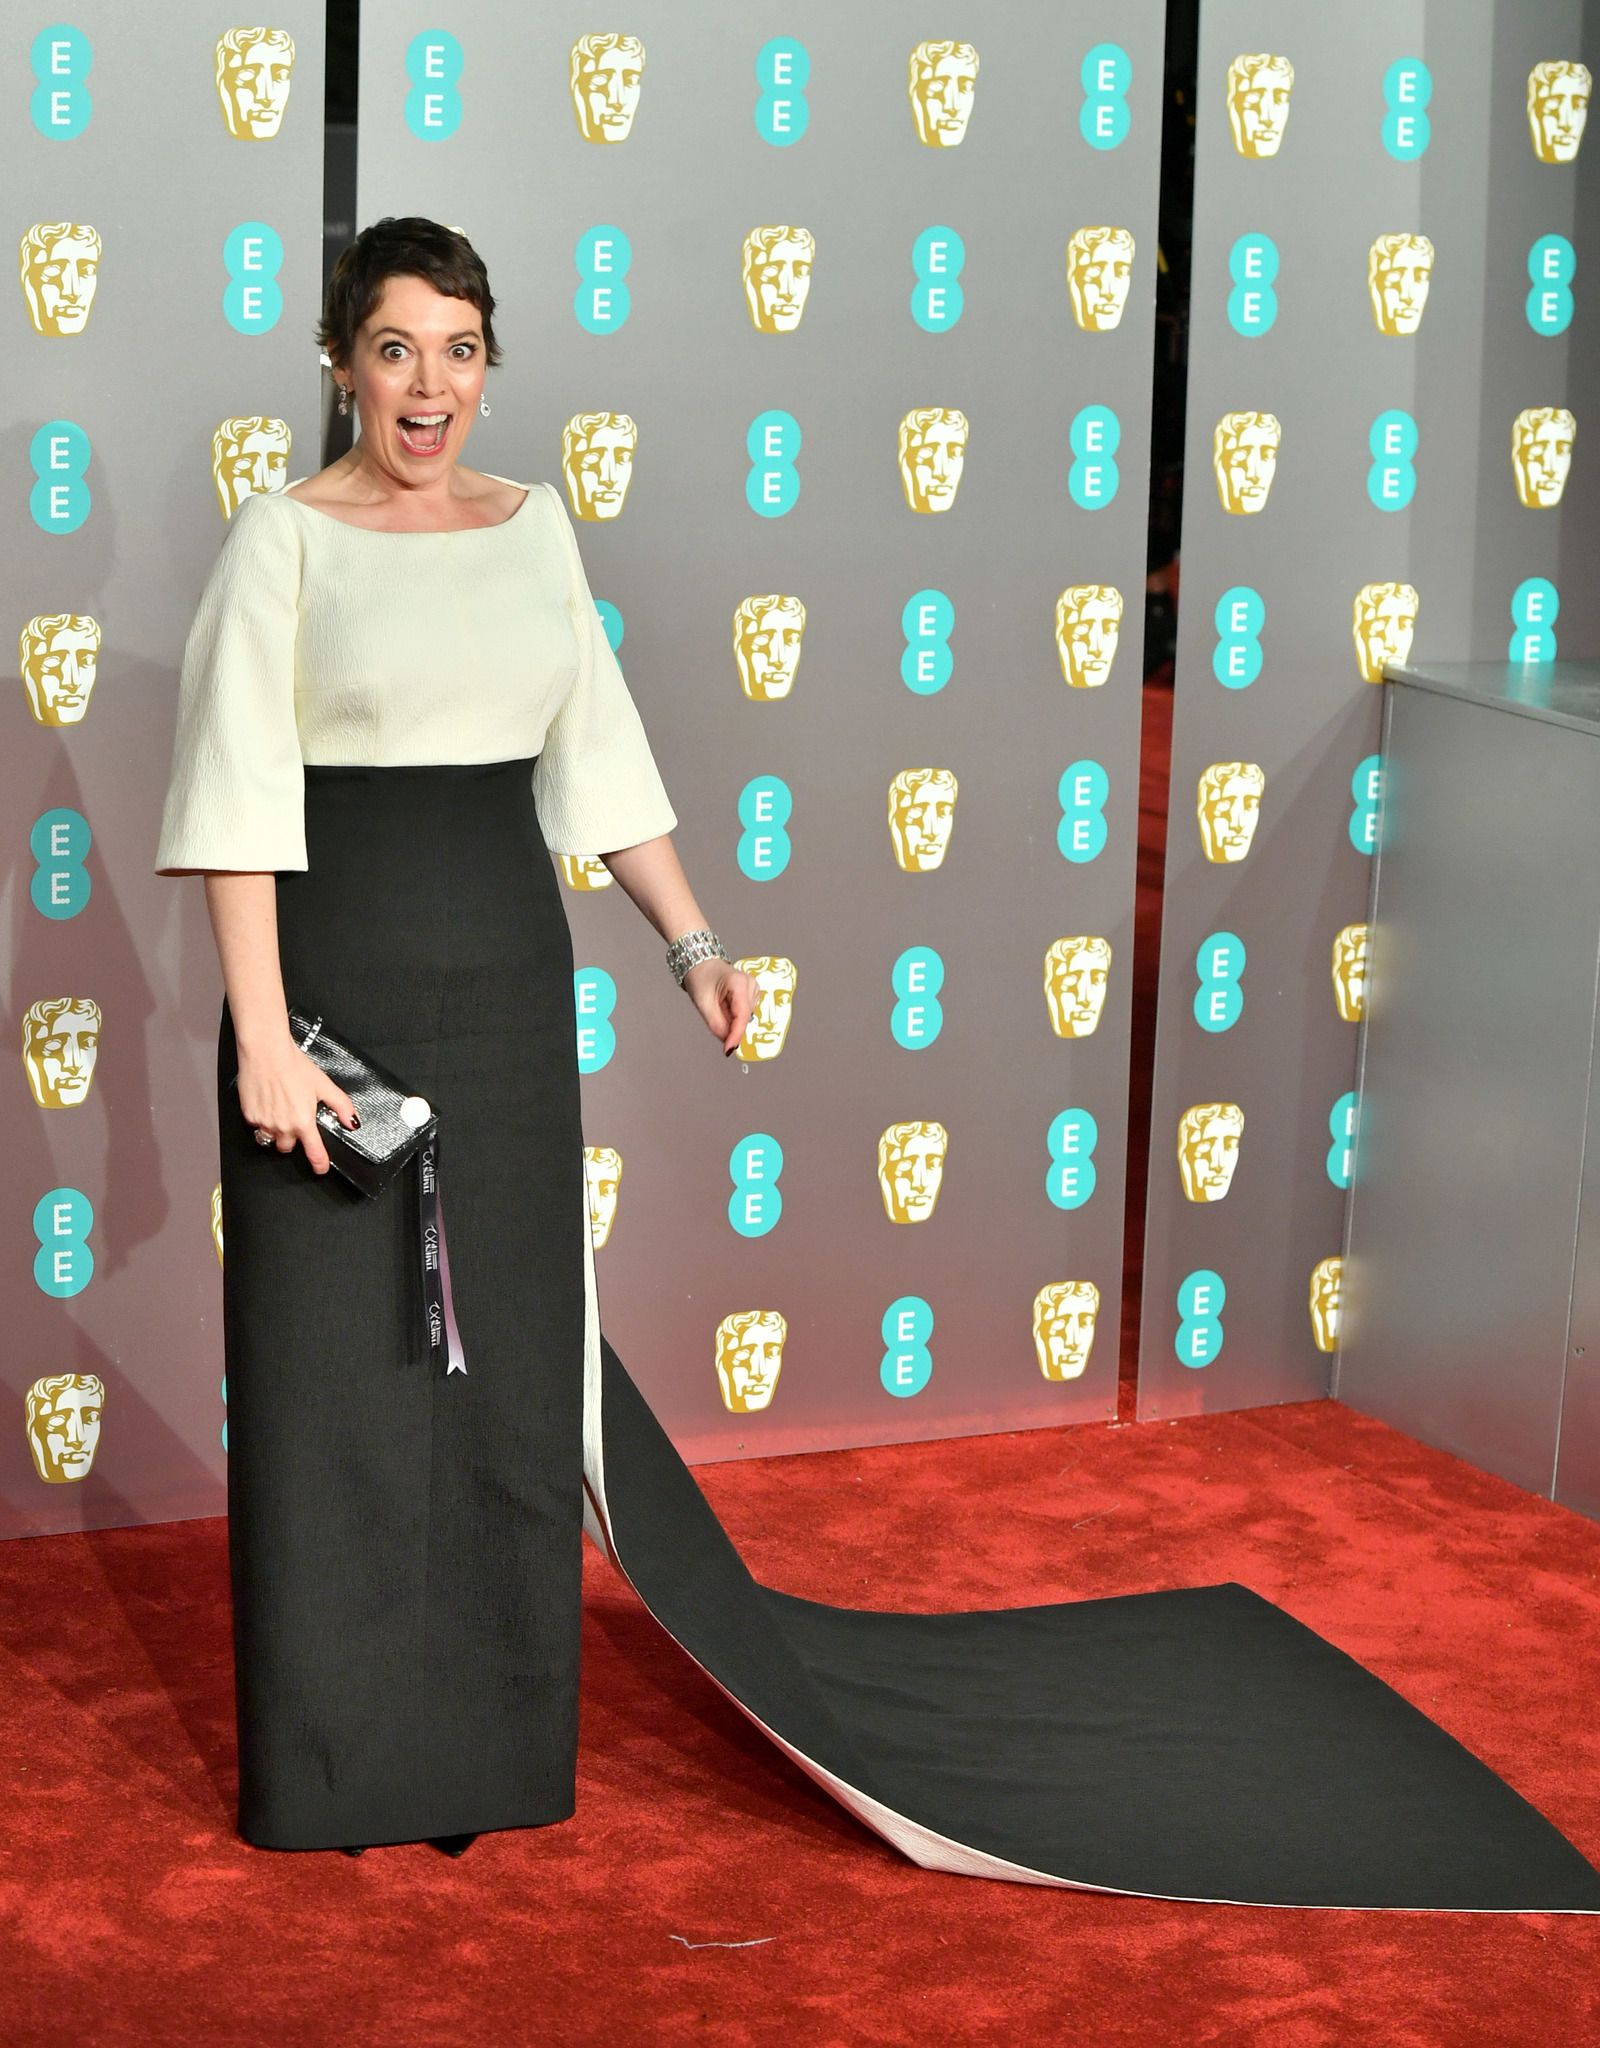 Olivia Colman at an event for EE British Academy Film Awards (2019)